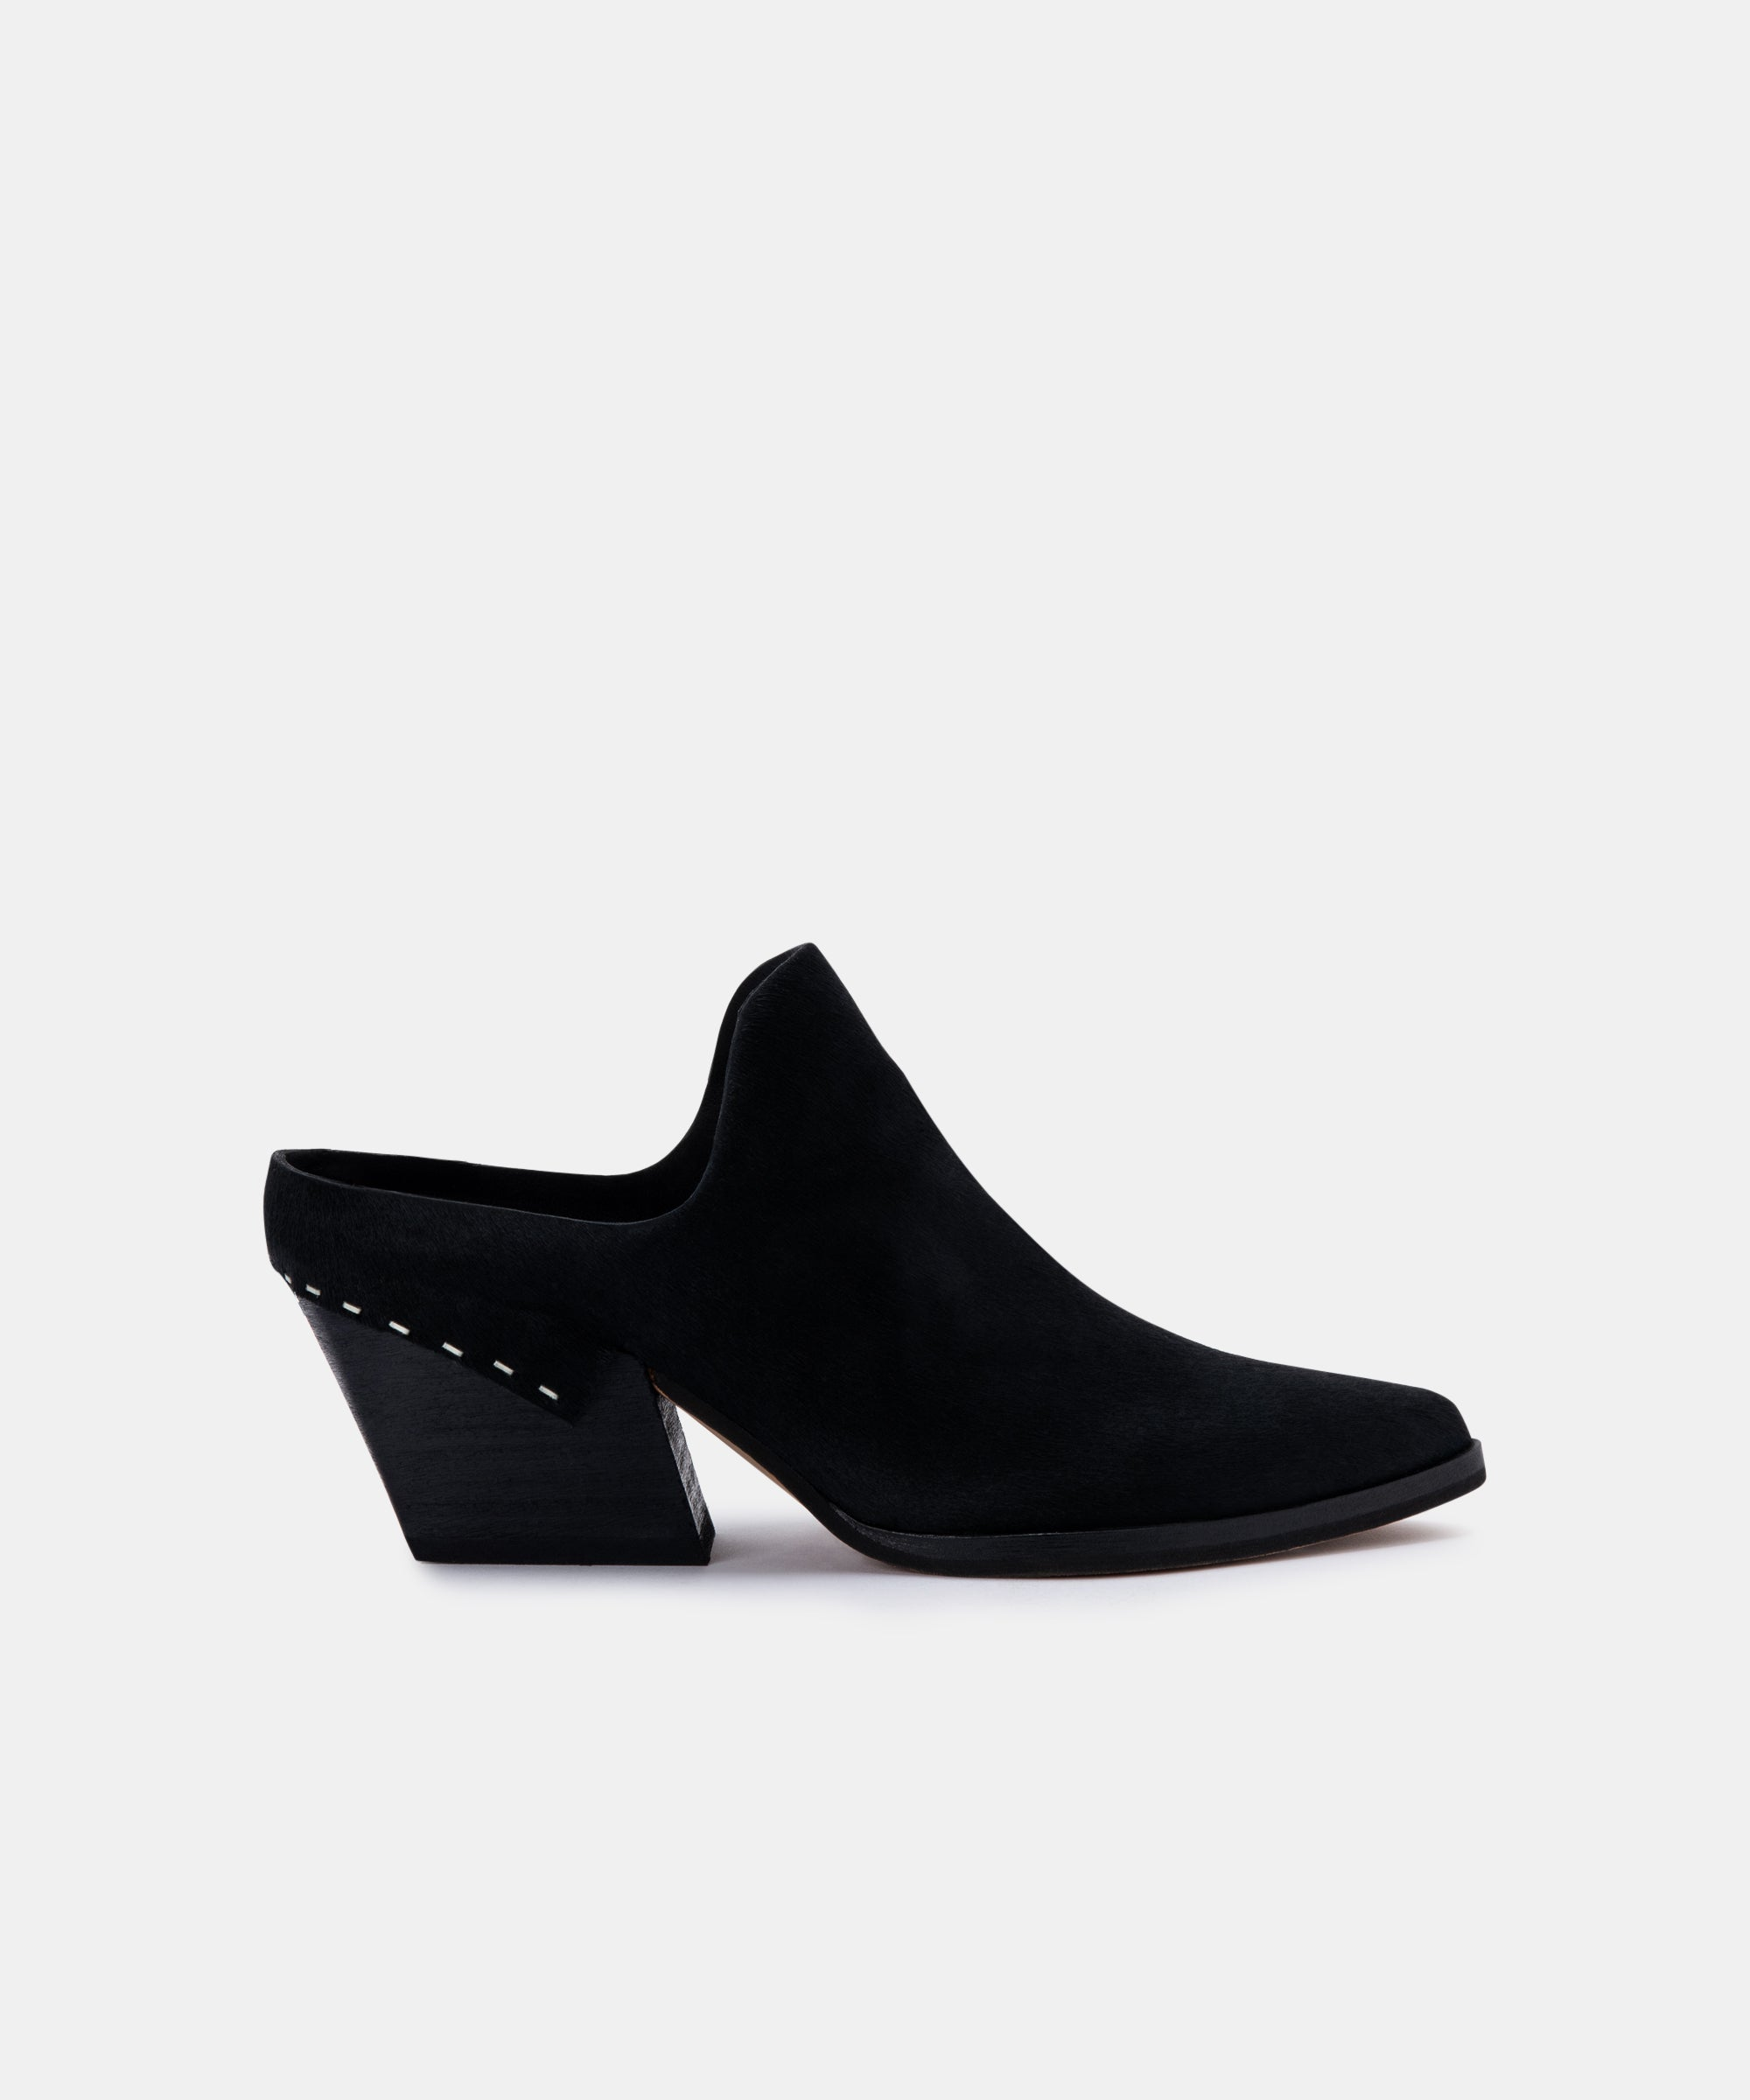 LINDSY MULES IN MIDNIGHT CALF HAIR